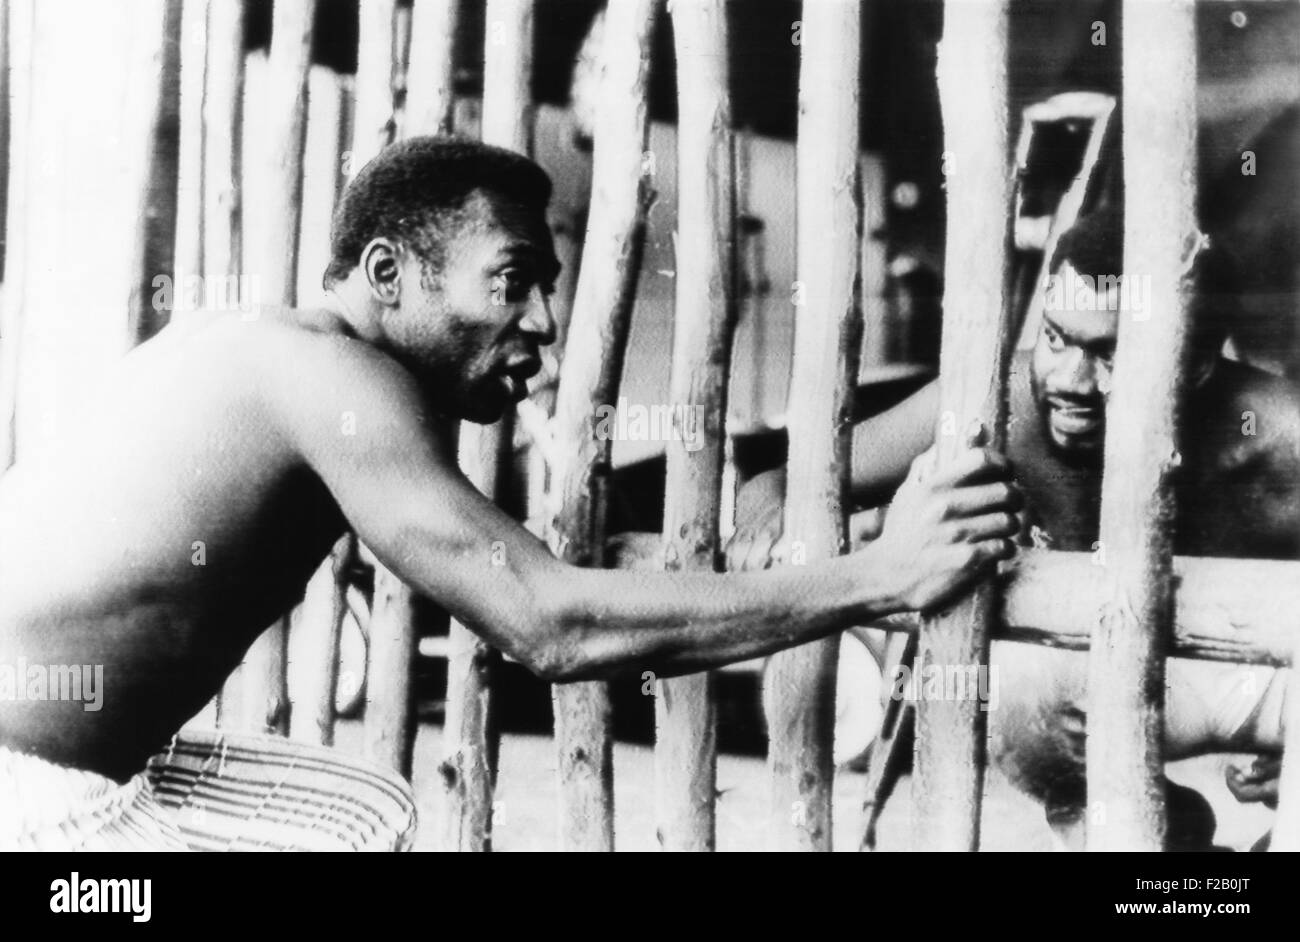 Brazilian Soccer superstar Pele, in the 1971 movie A MARCHA produced by Oswaldo Sampaio. Pele played the part of - Stock Image